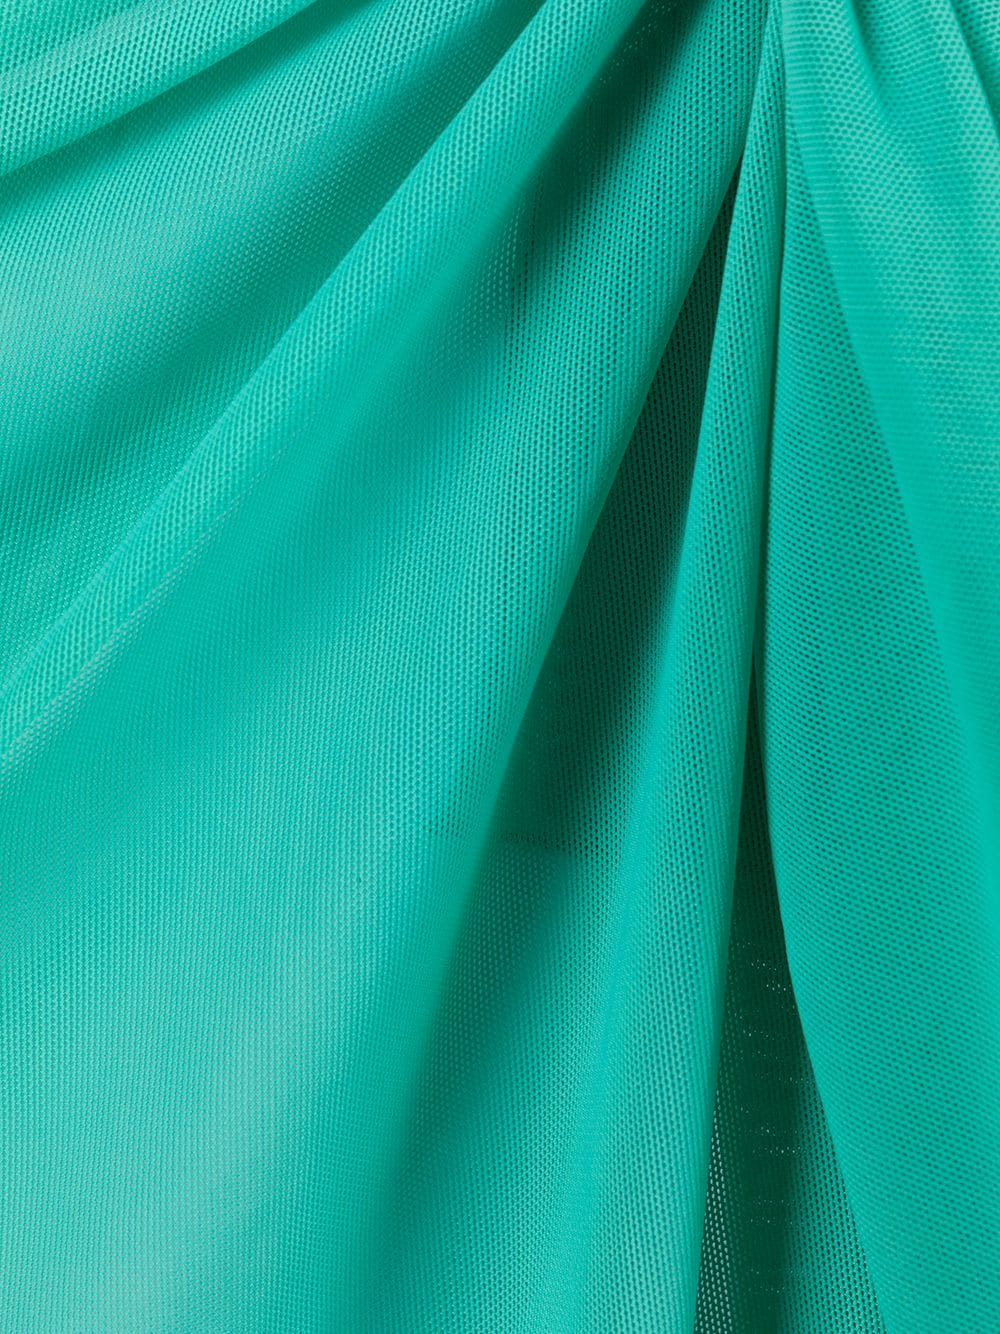 Picture of Fisico   Pareo Tulle